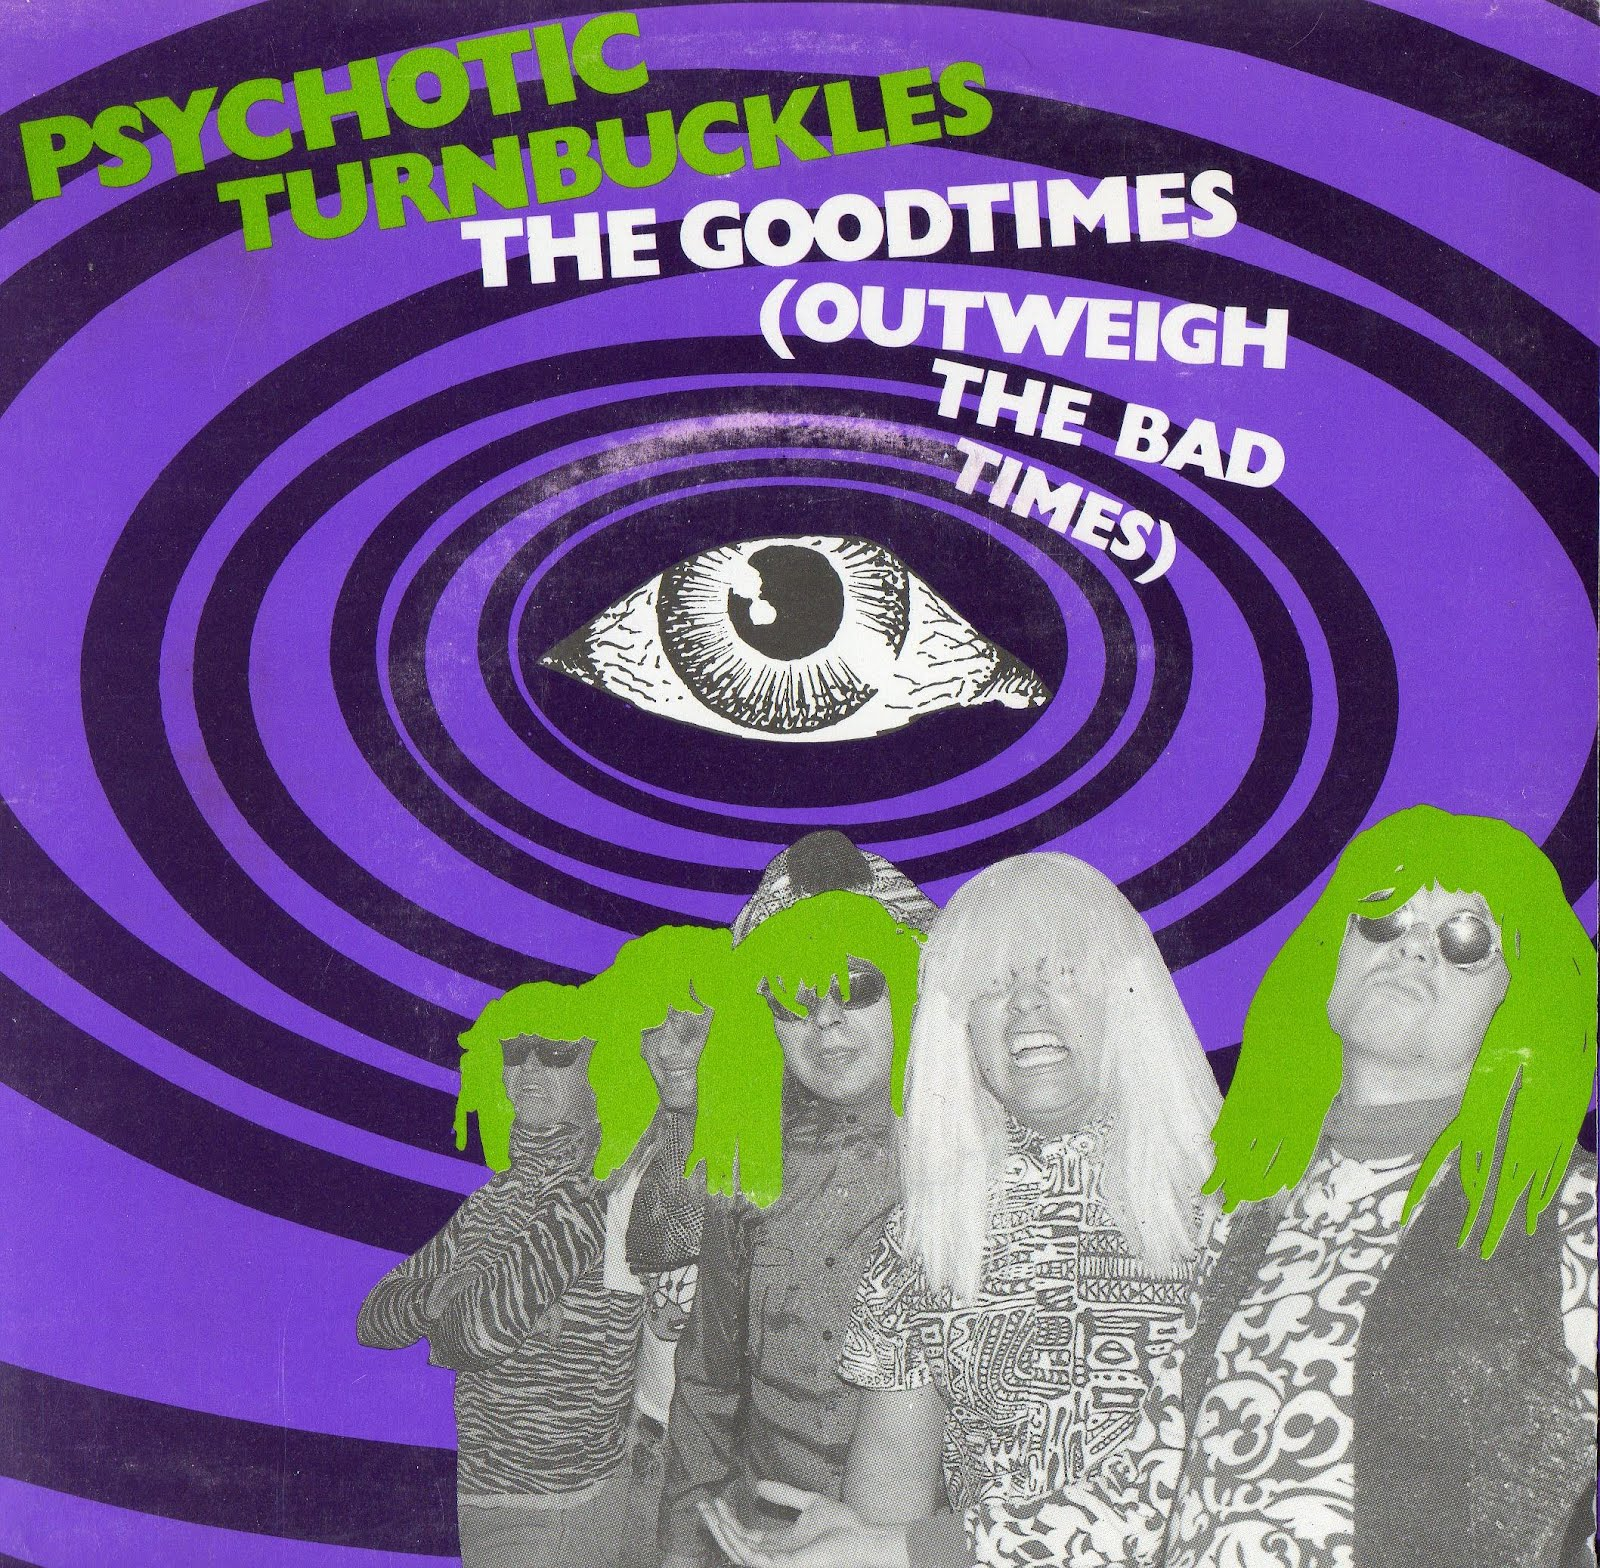 Psychotic Turnbuckles - Pharaos Of The Far Out